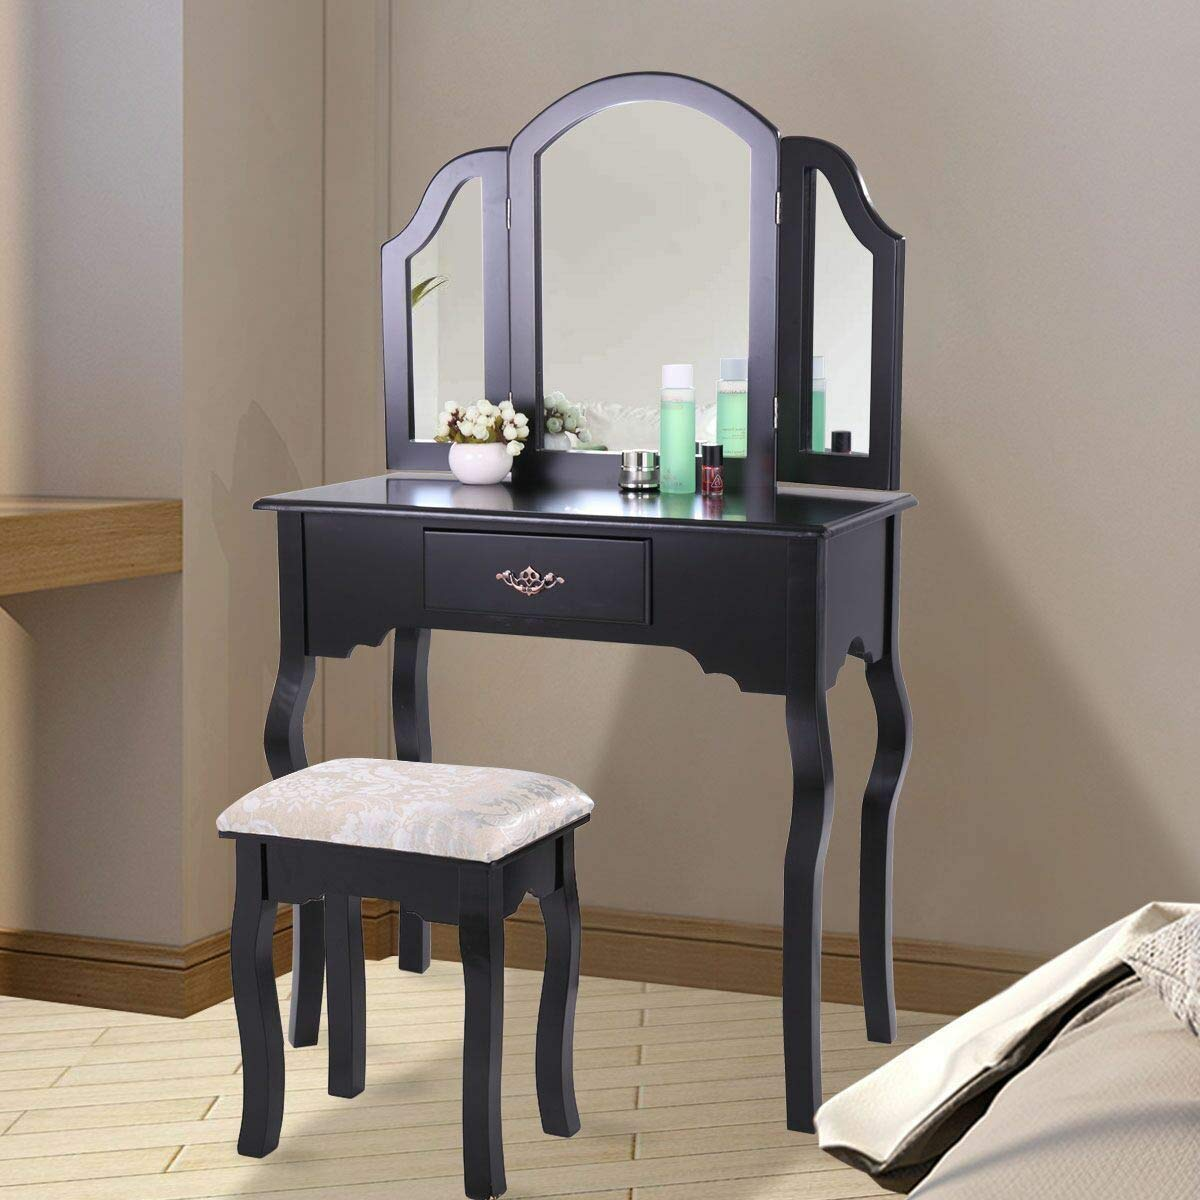 goodyusstore Beautiful and Elegantly Design, Collapsible Side Mirrors, Black Vanity Makeup Table Set Dressing Jewelry Desk with Drawer